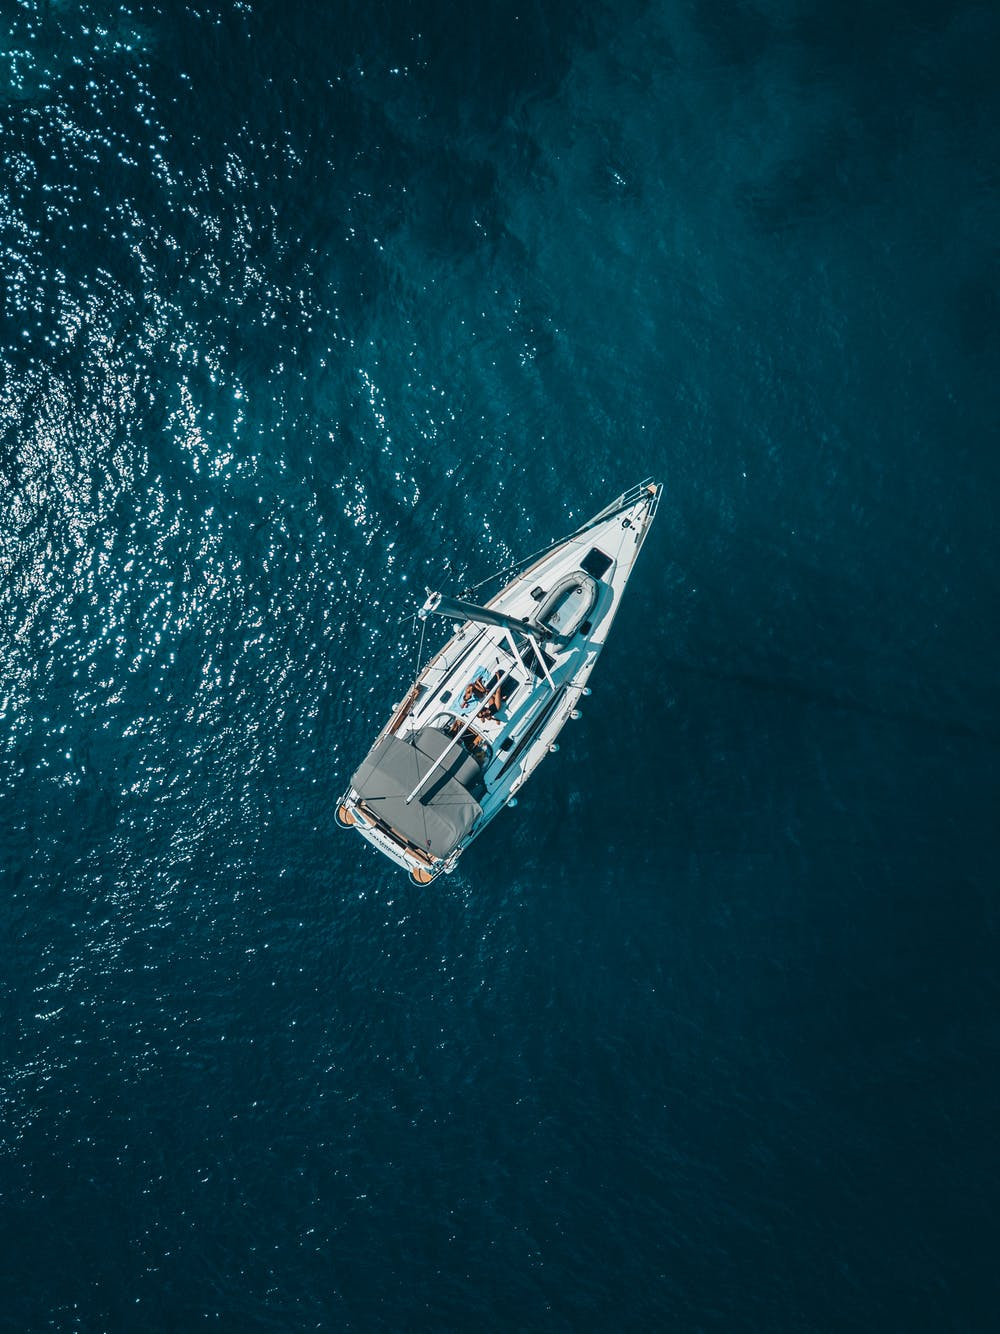 Boat on the ocean. | Photo: Pexels